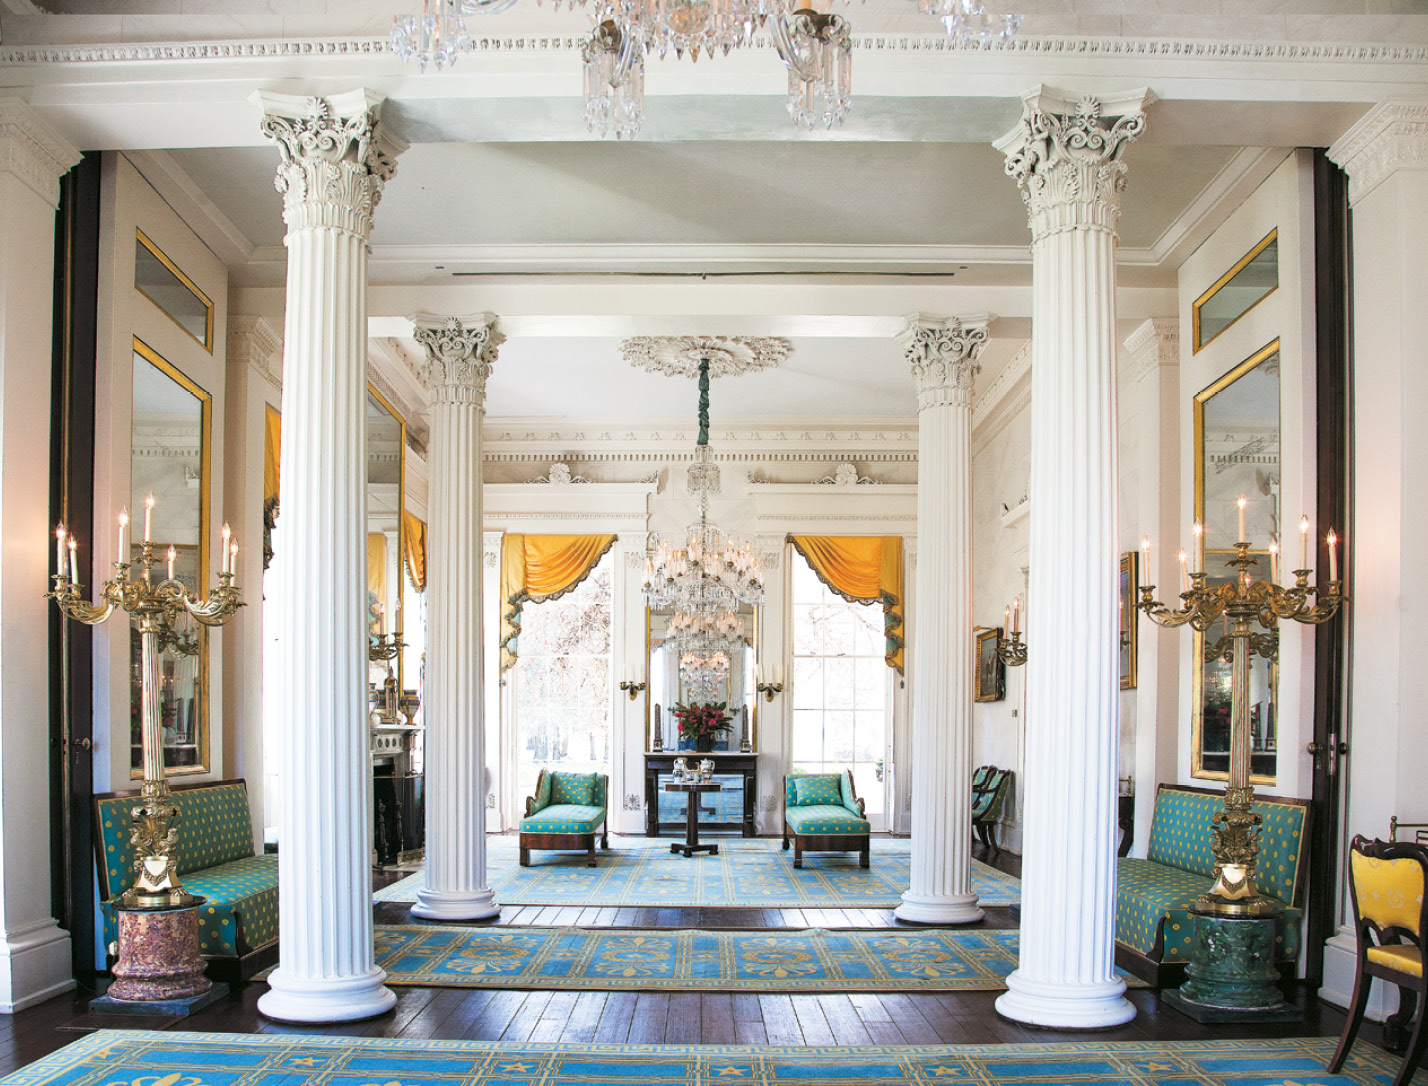 Millford's double parlors host a classical music concert on September 18 (visit classicalamericanhomes.org).